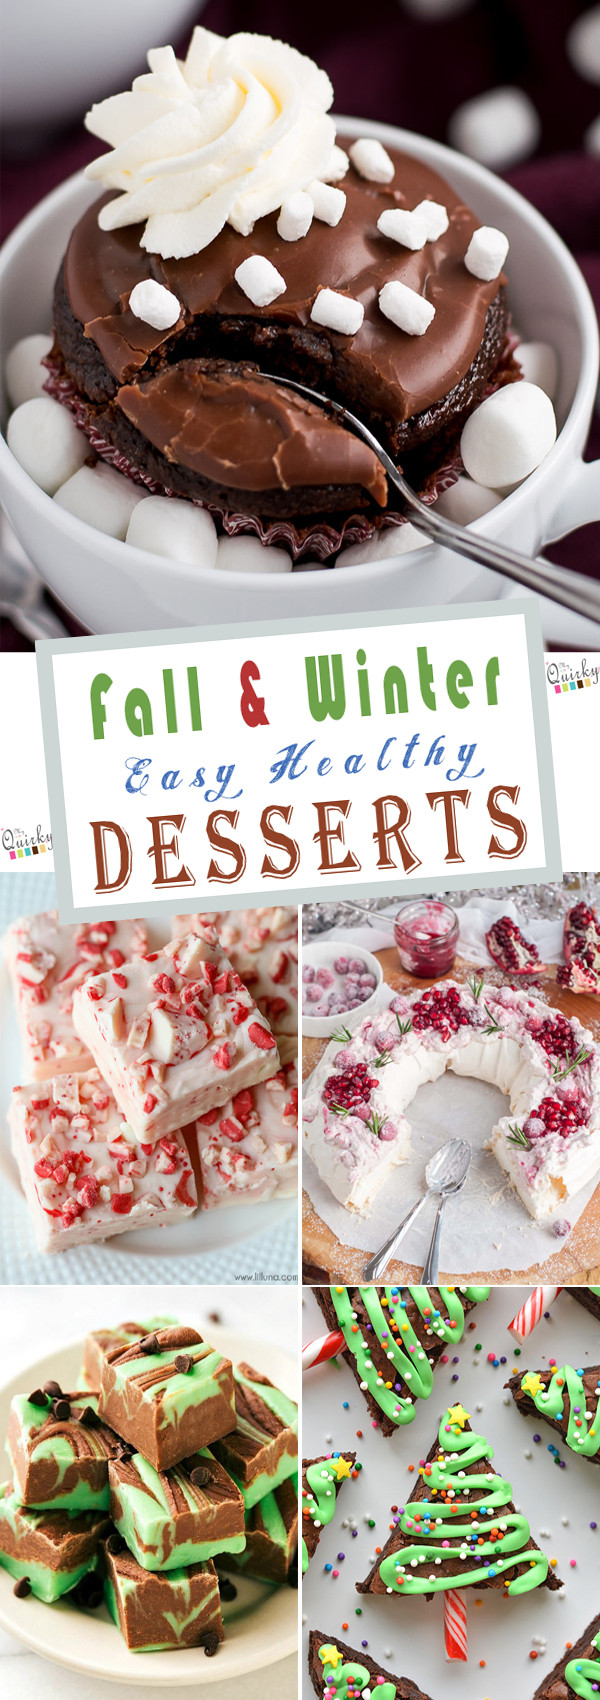 Easy To Make Healthy Desserts  23 Fall & Winter Easy Healthy Desserts To Make At Home